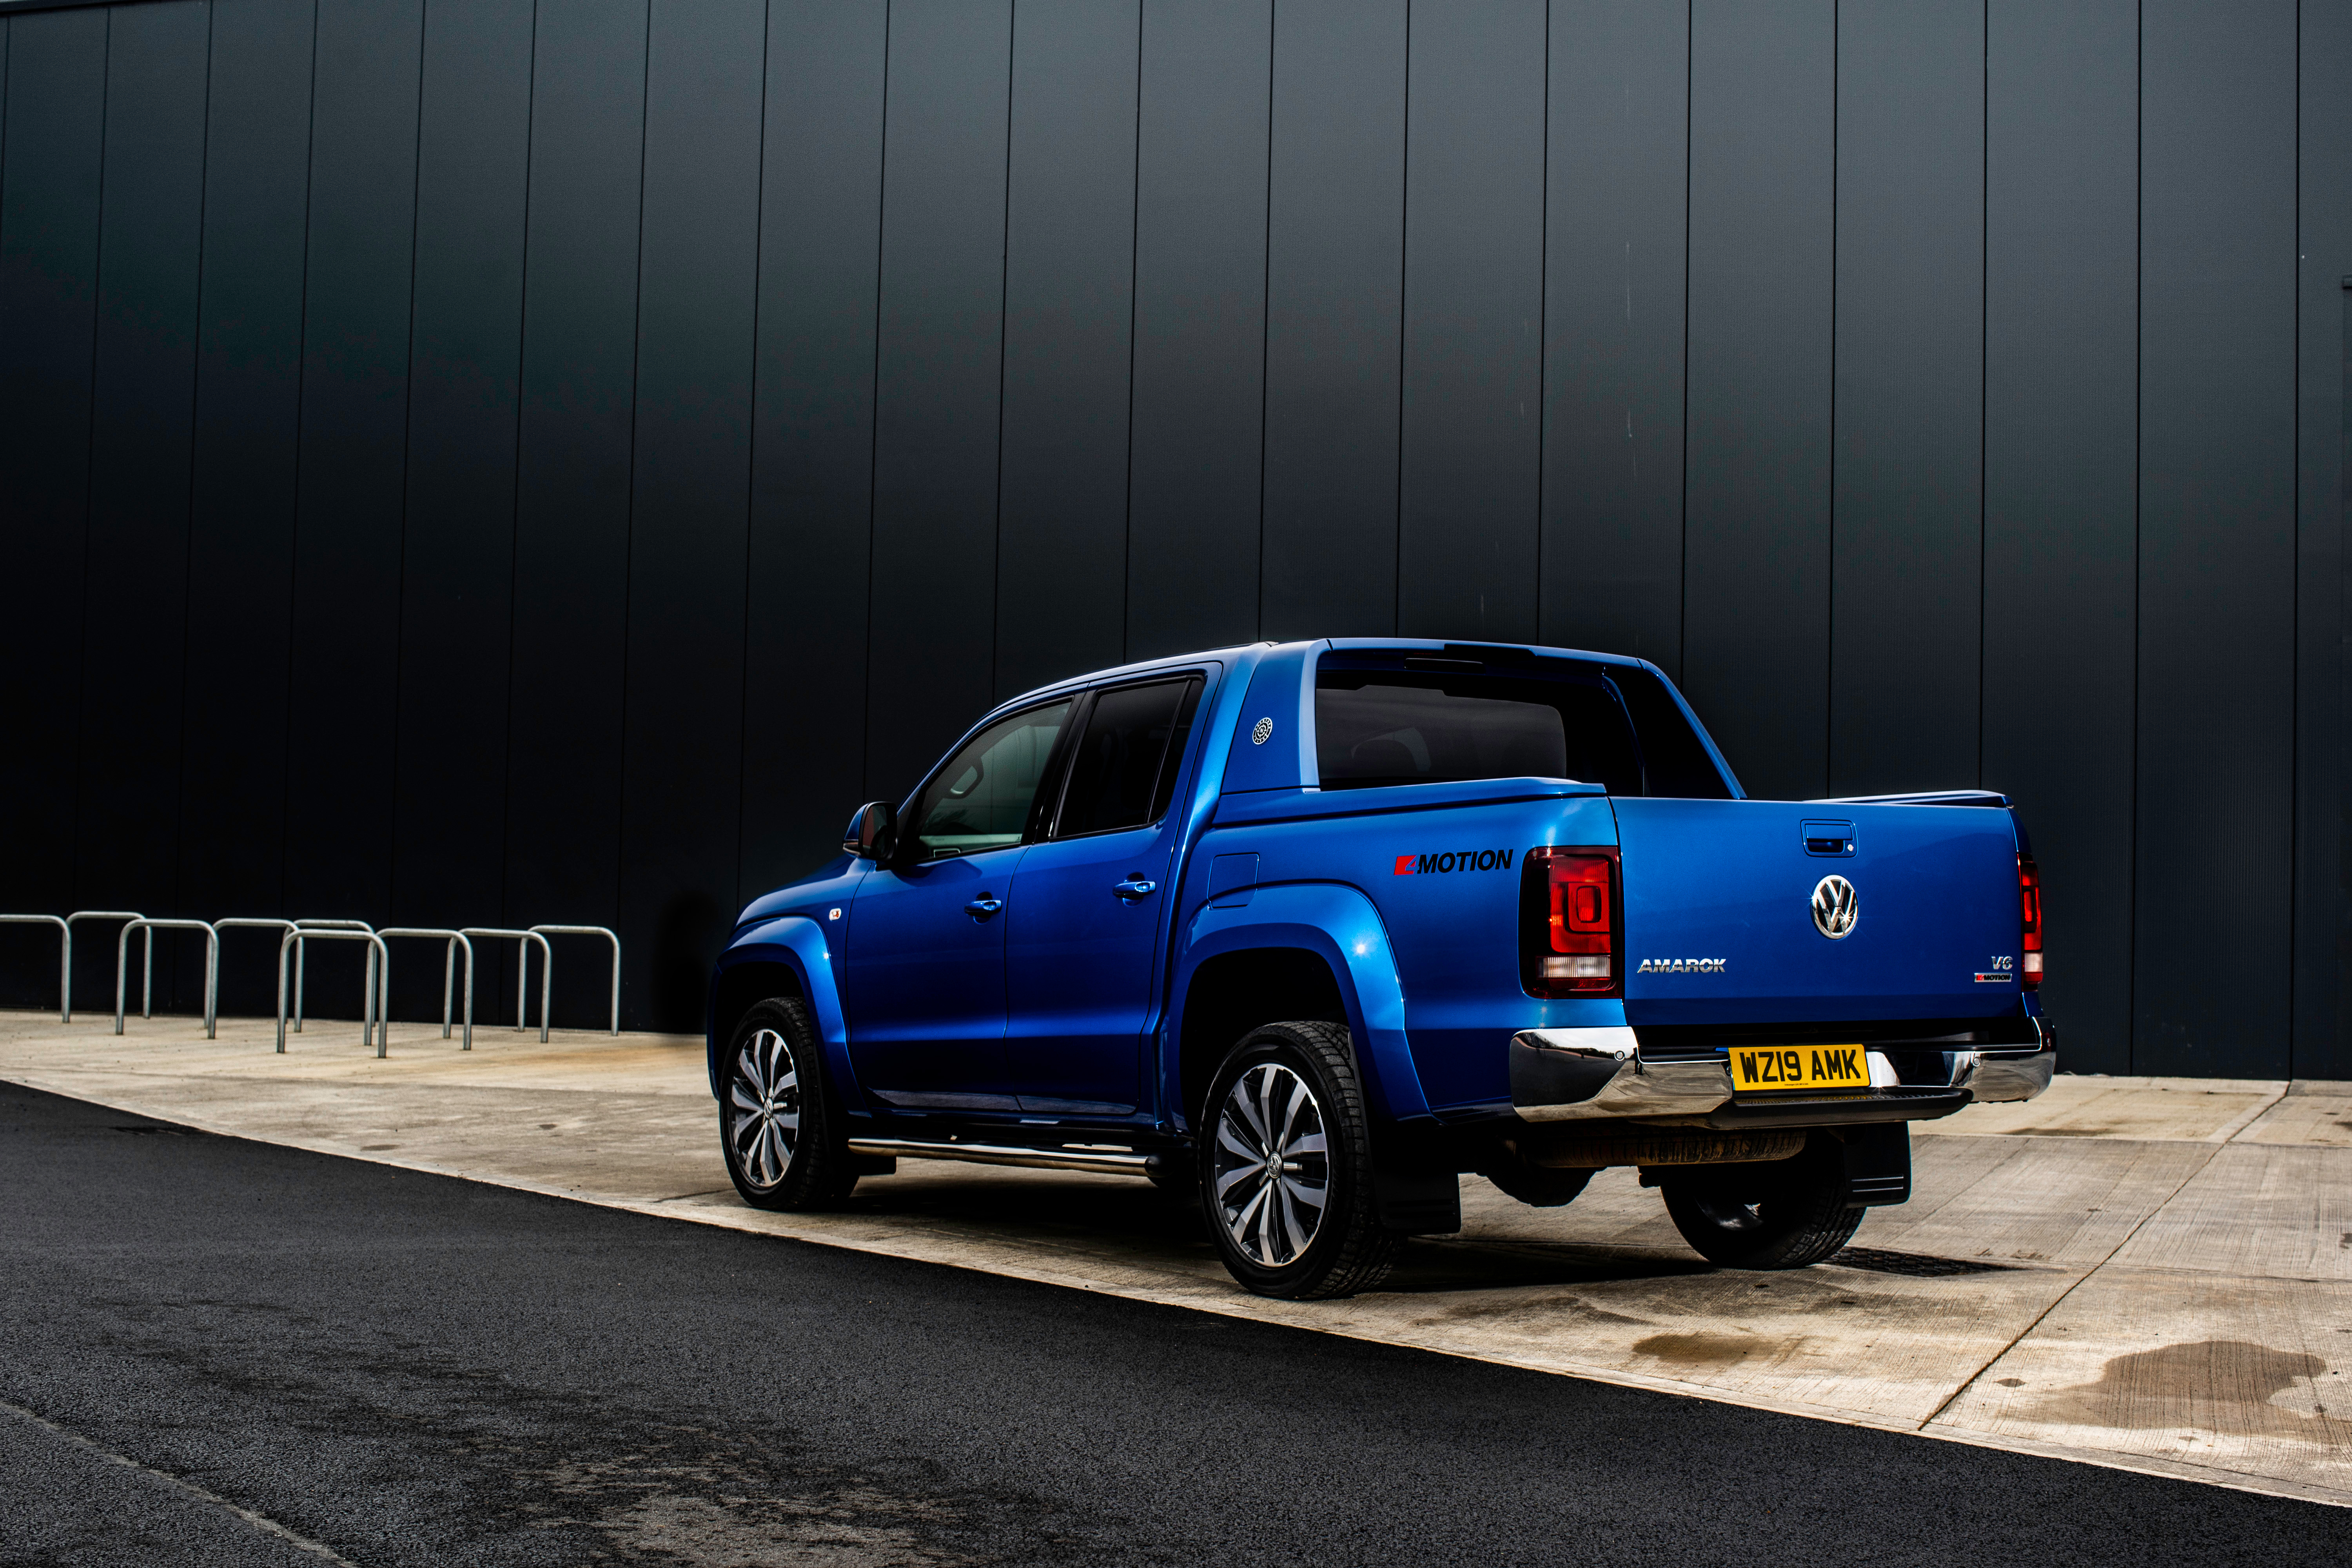 The Amarok behaves remarkably well on the road